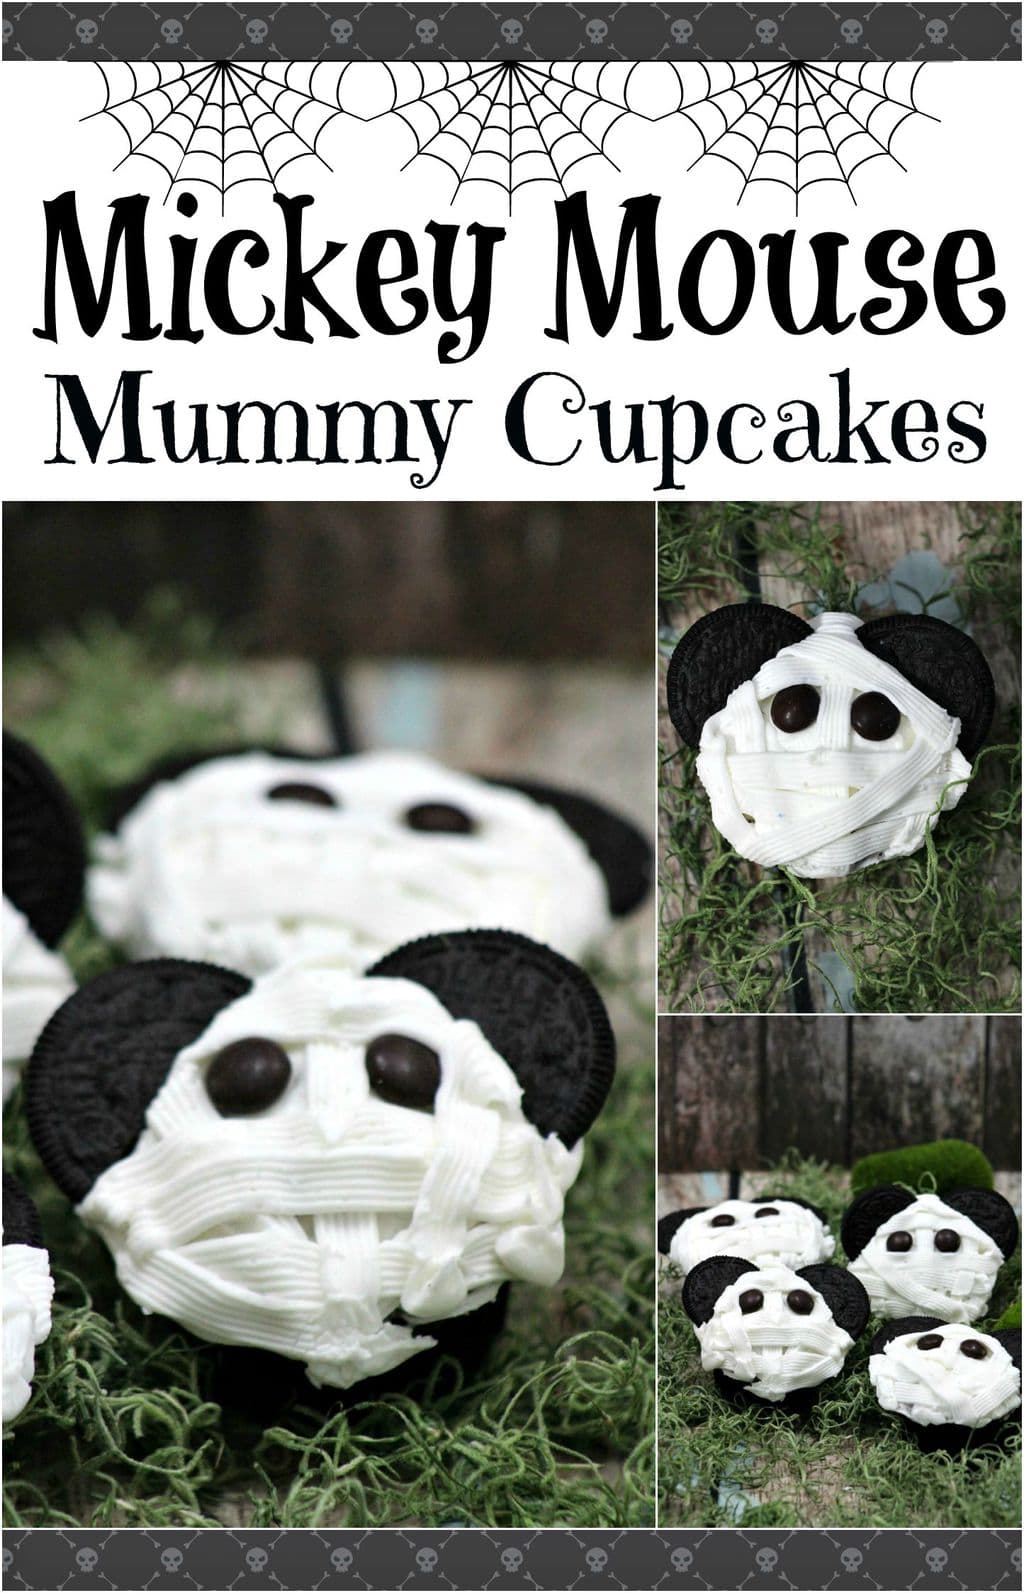 These Mickey Mouse Mummy Cupcakes are the perfect dessert to bring to a Halloween party! Everyone loves Mickey, and this dessert recipe is so easy! Let everyone else bring appetizers and snack food, and you bring this delicious sweet treat!